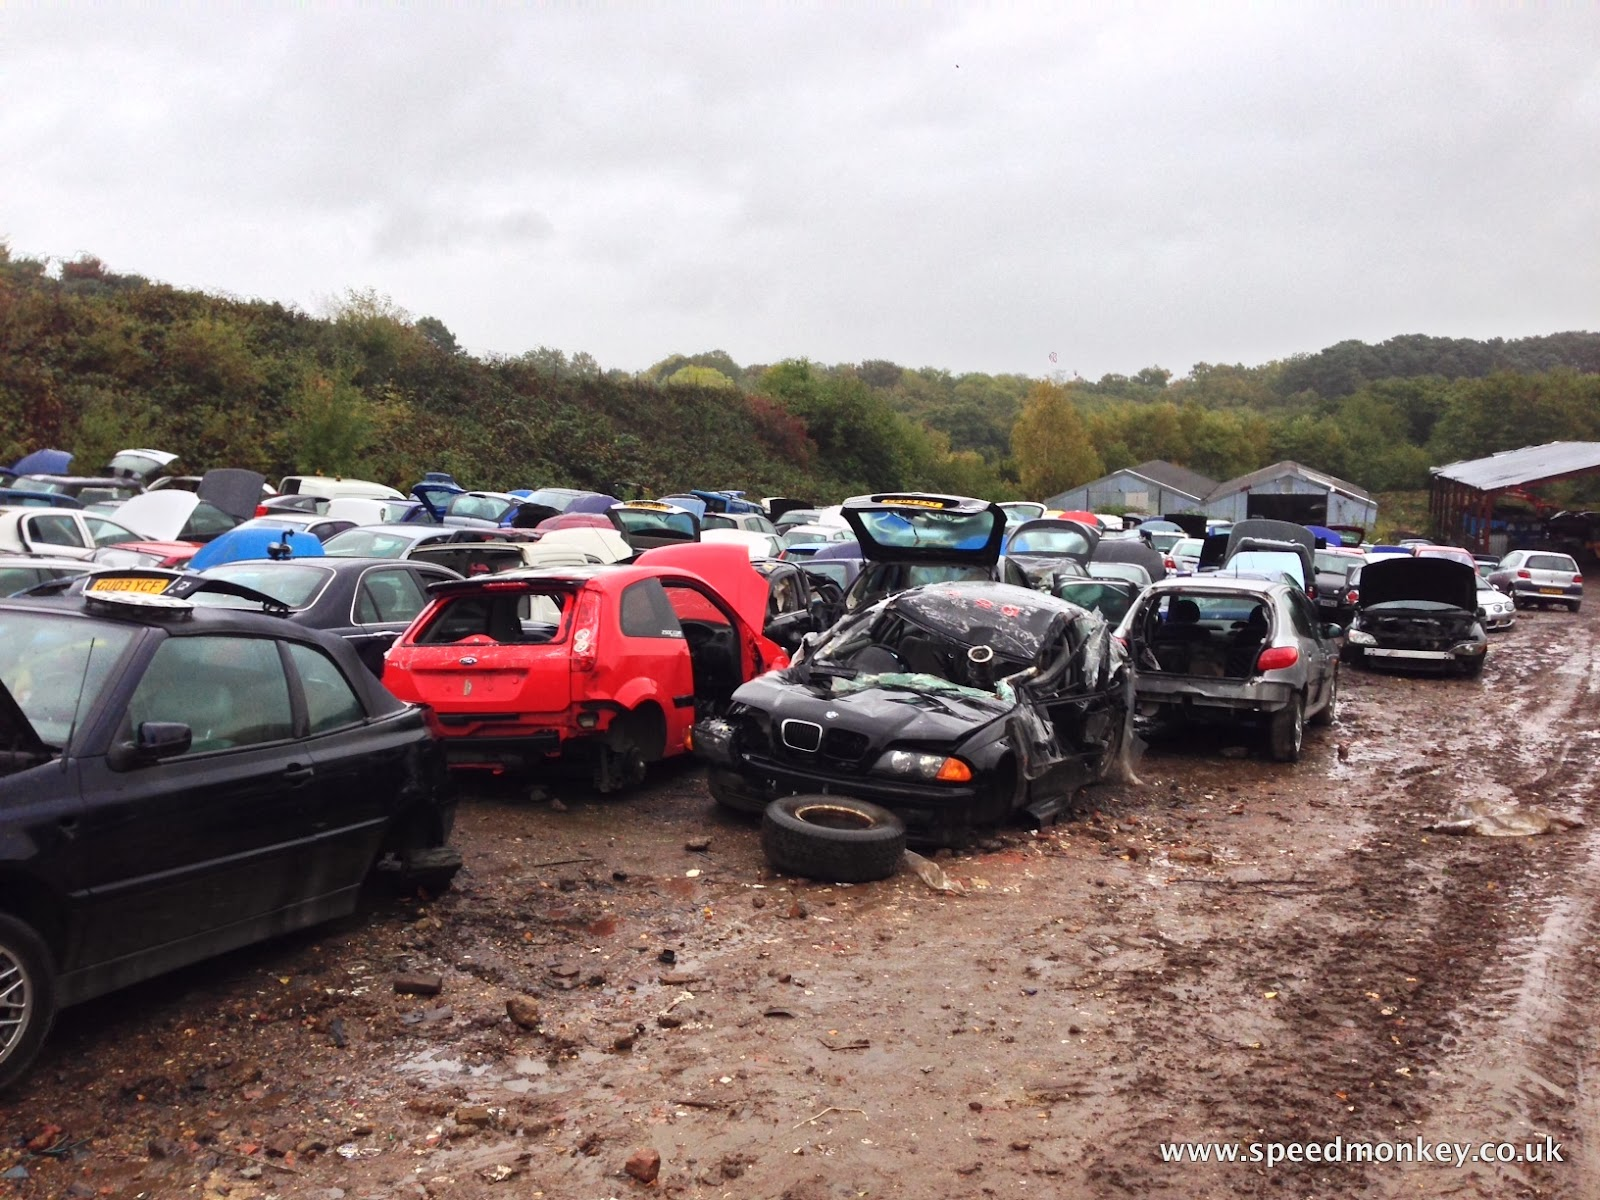 Speedmonkey: How To Save A Fortune By Getting Car Parts From A Scrapyard